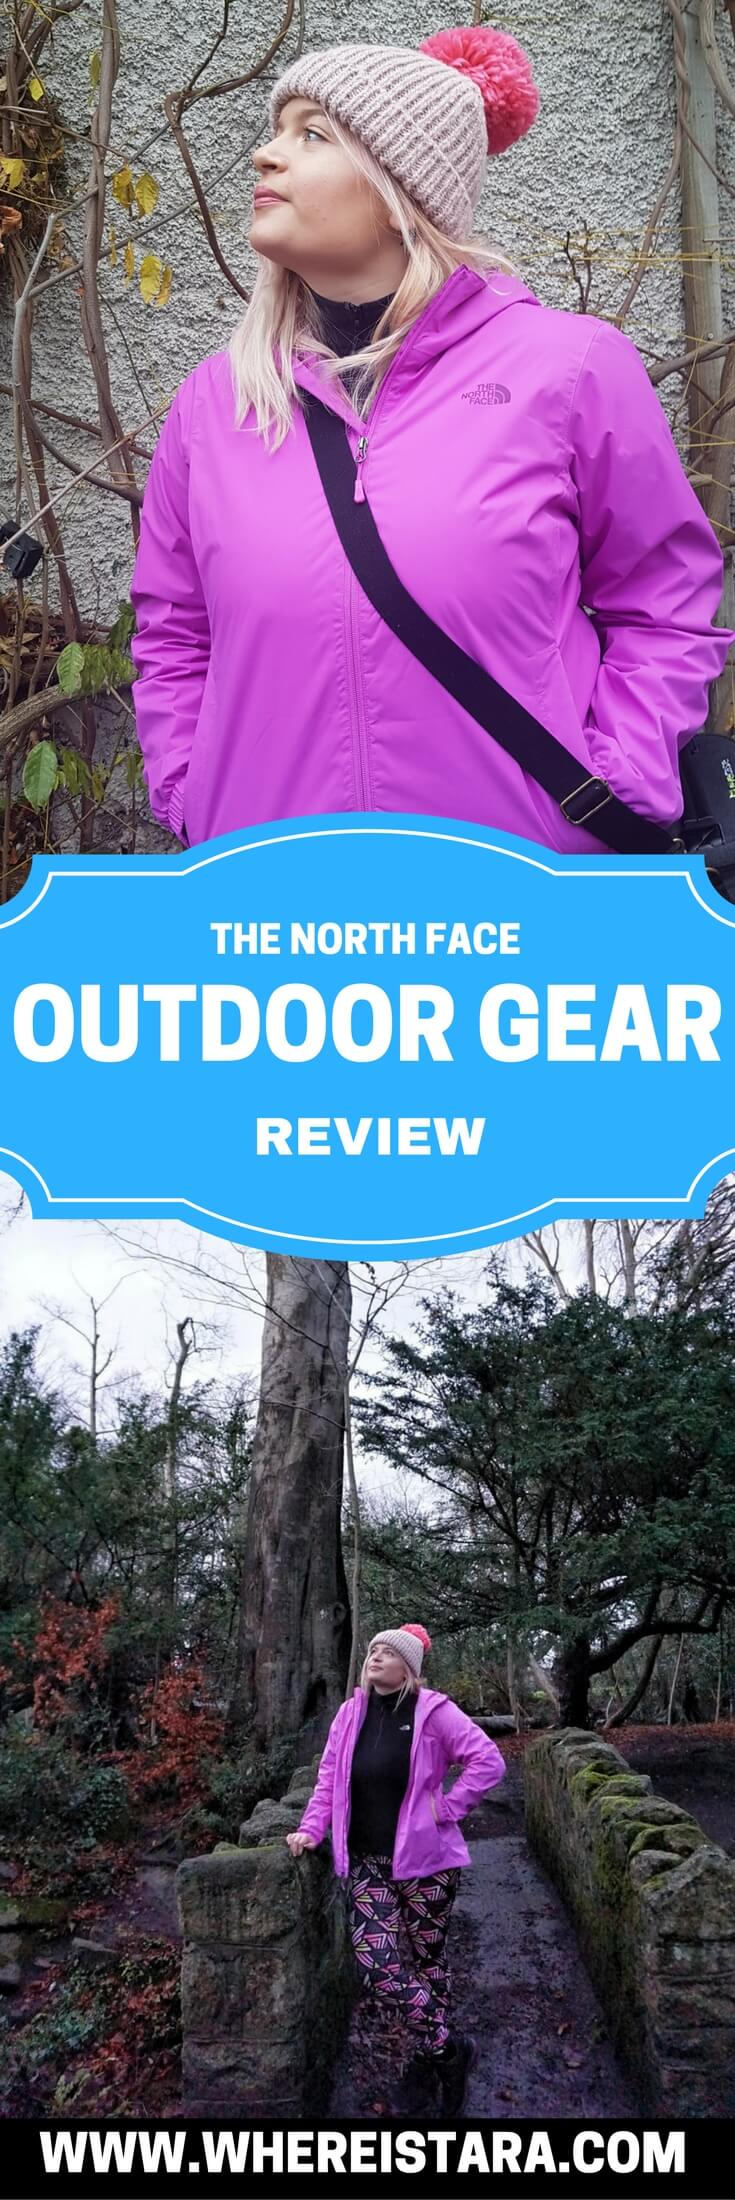 THE NORTH FACE OUTDOOR GEAR REVIEW WHERE IS TARA povey top irish travel blogger